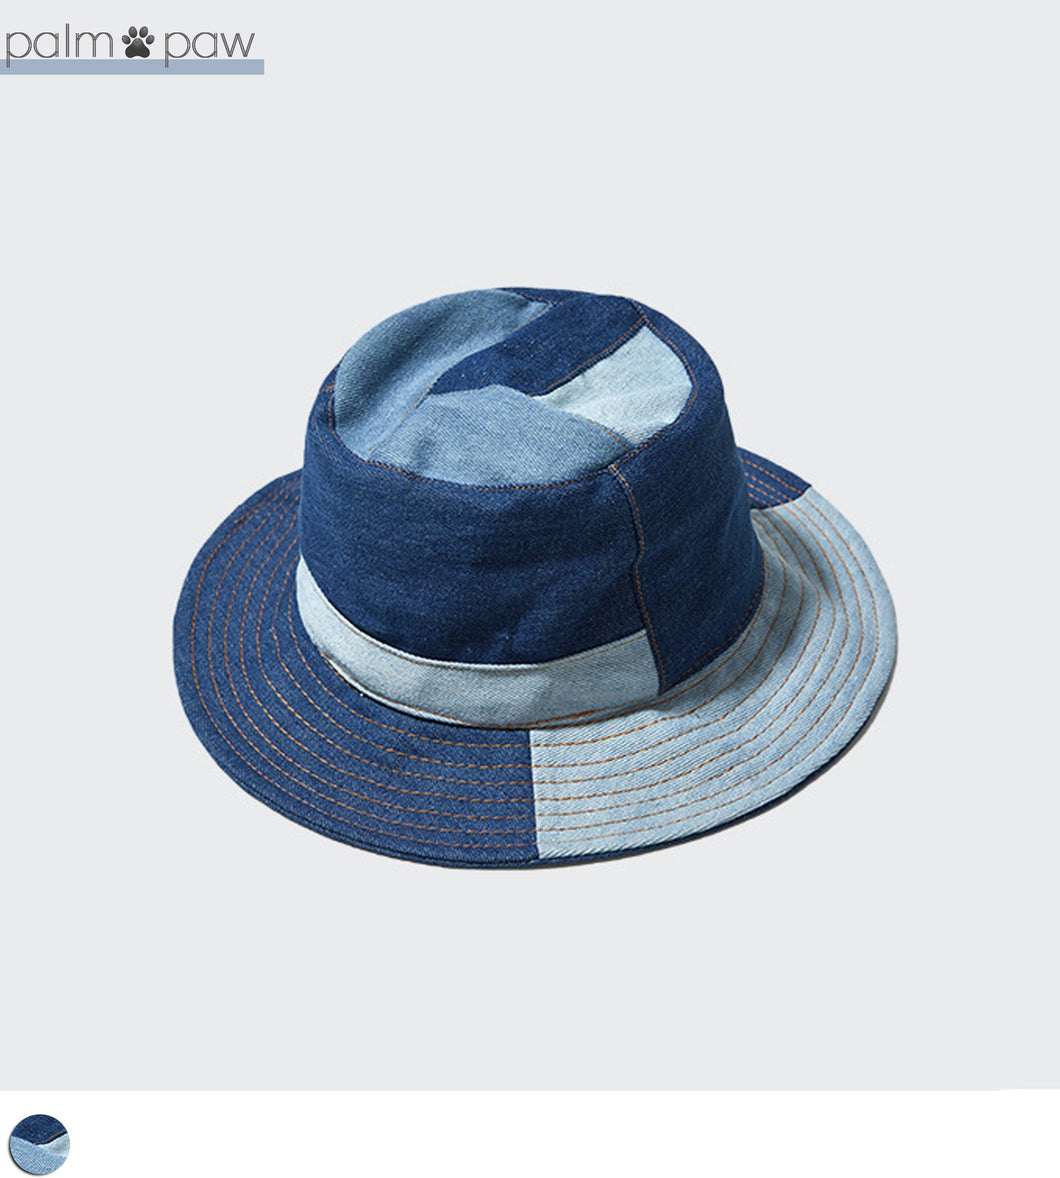 Patchwork Denim Bucket Hat - Palm Paw